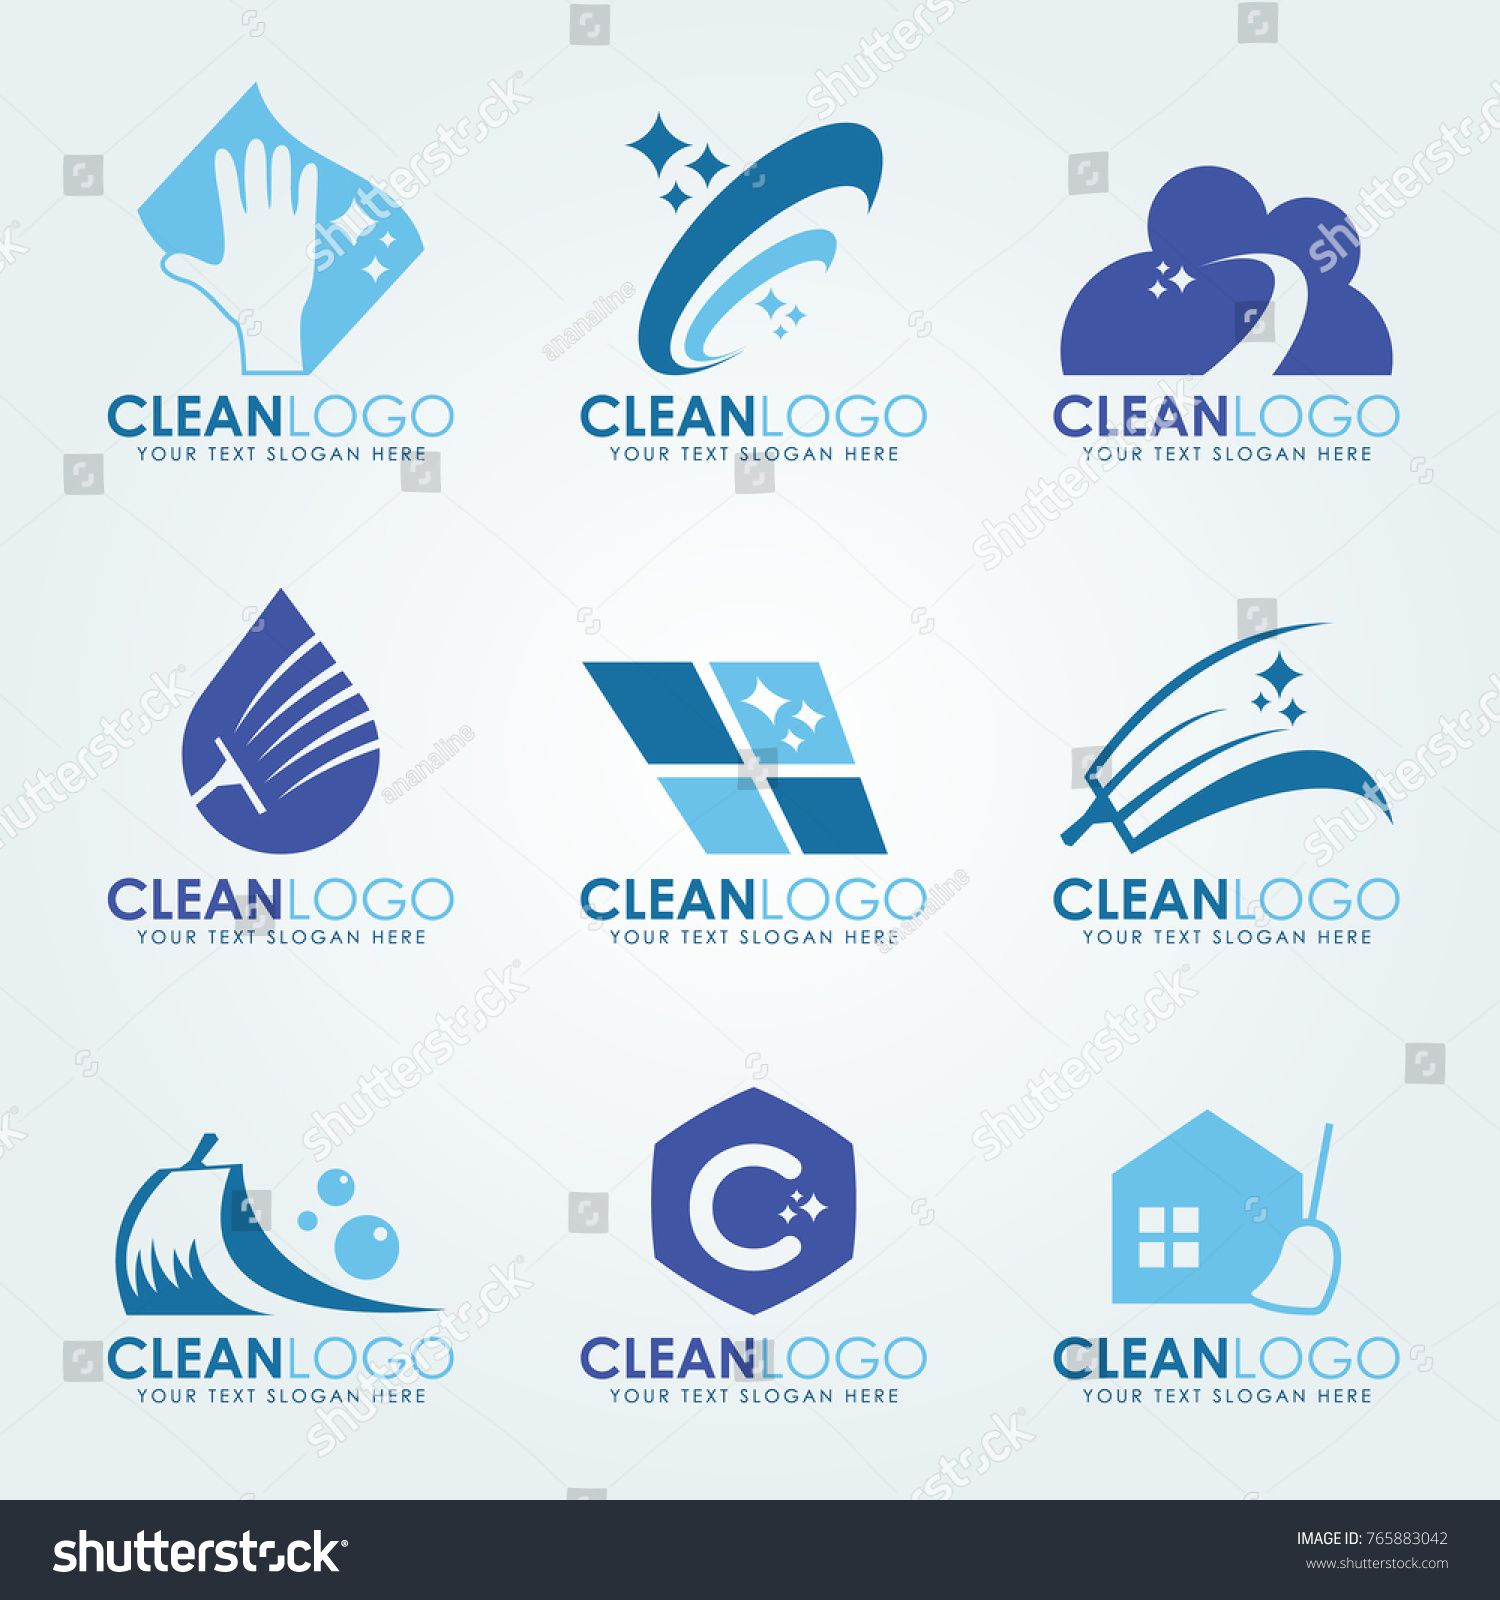 Blue Clean logo with Cleaning gloves, water droplets